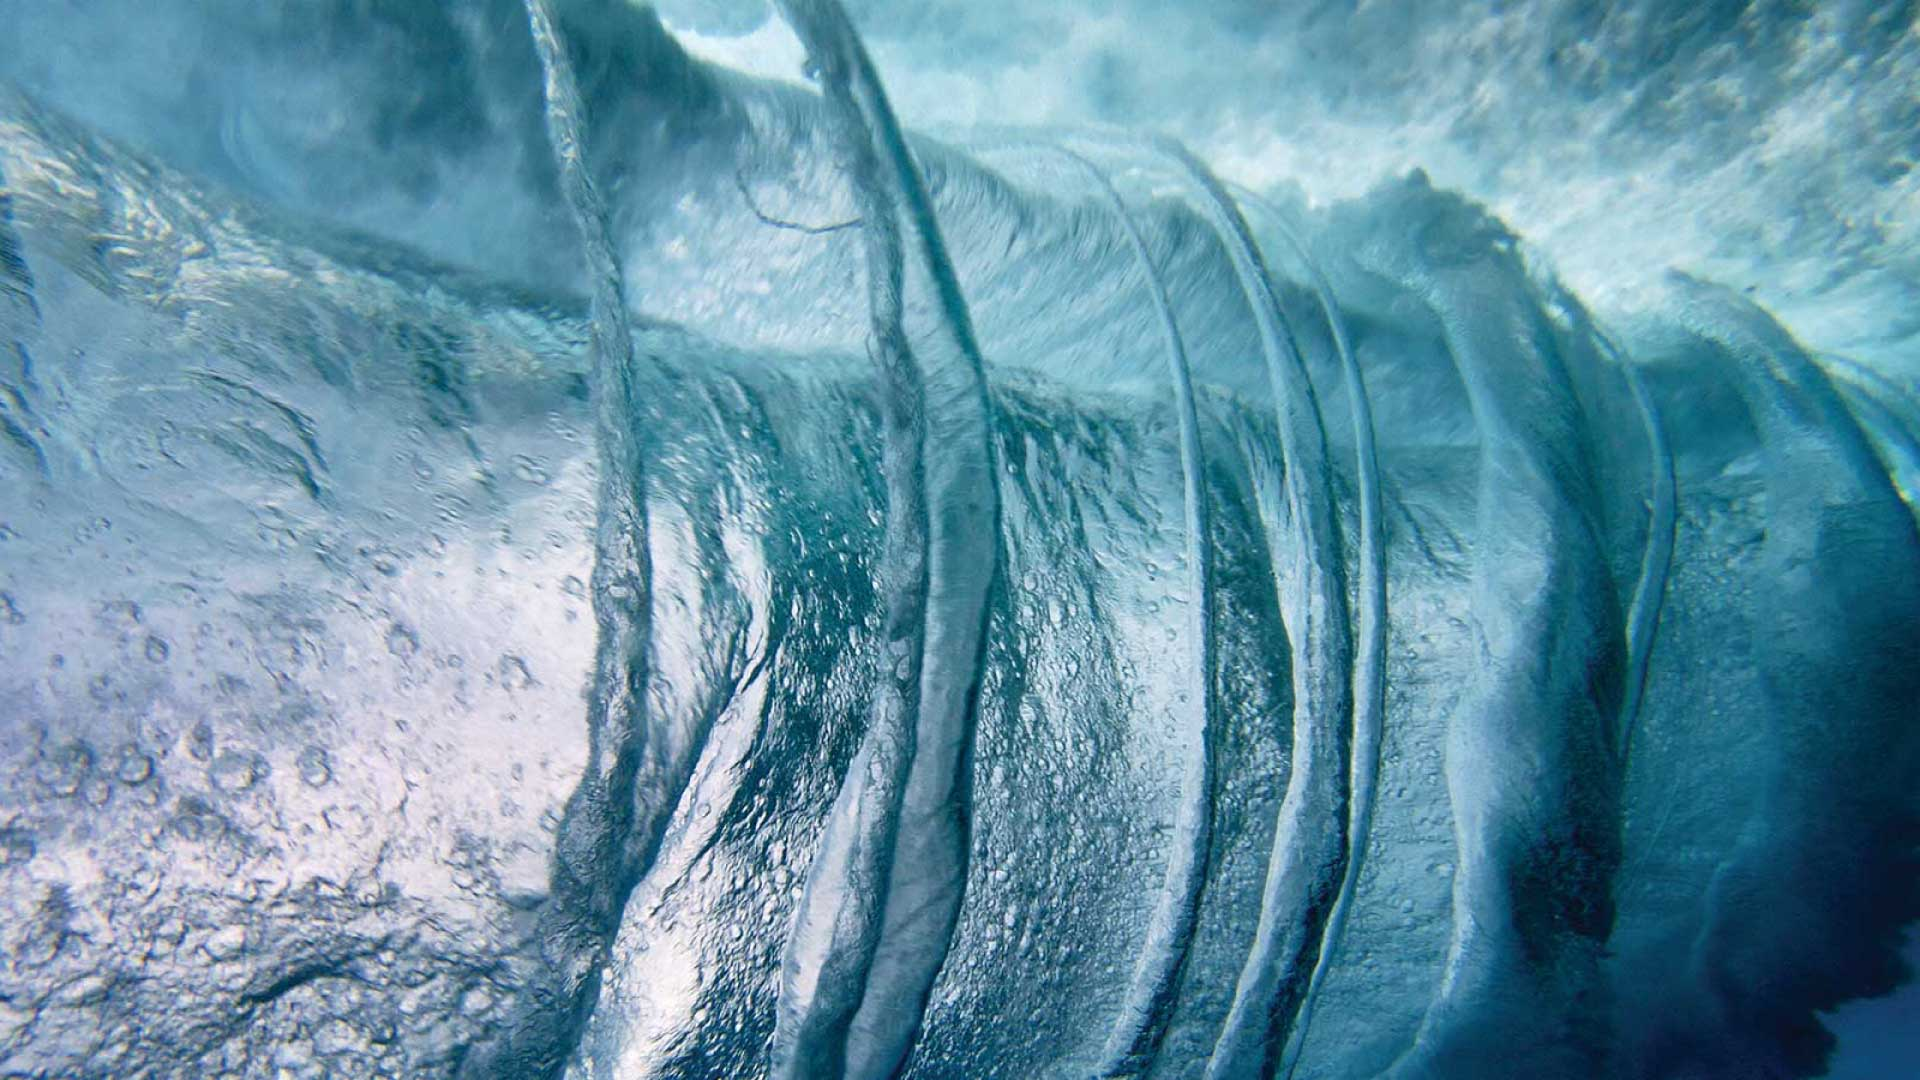 Powerful waves churning under water